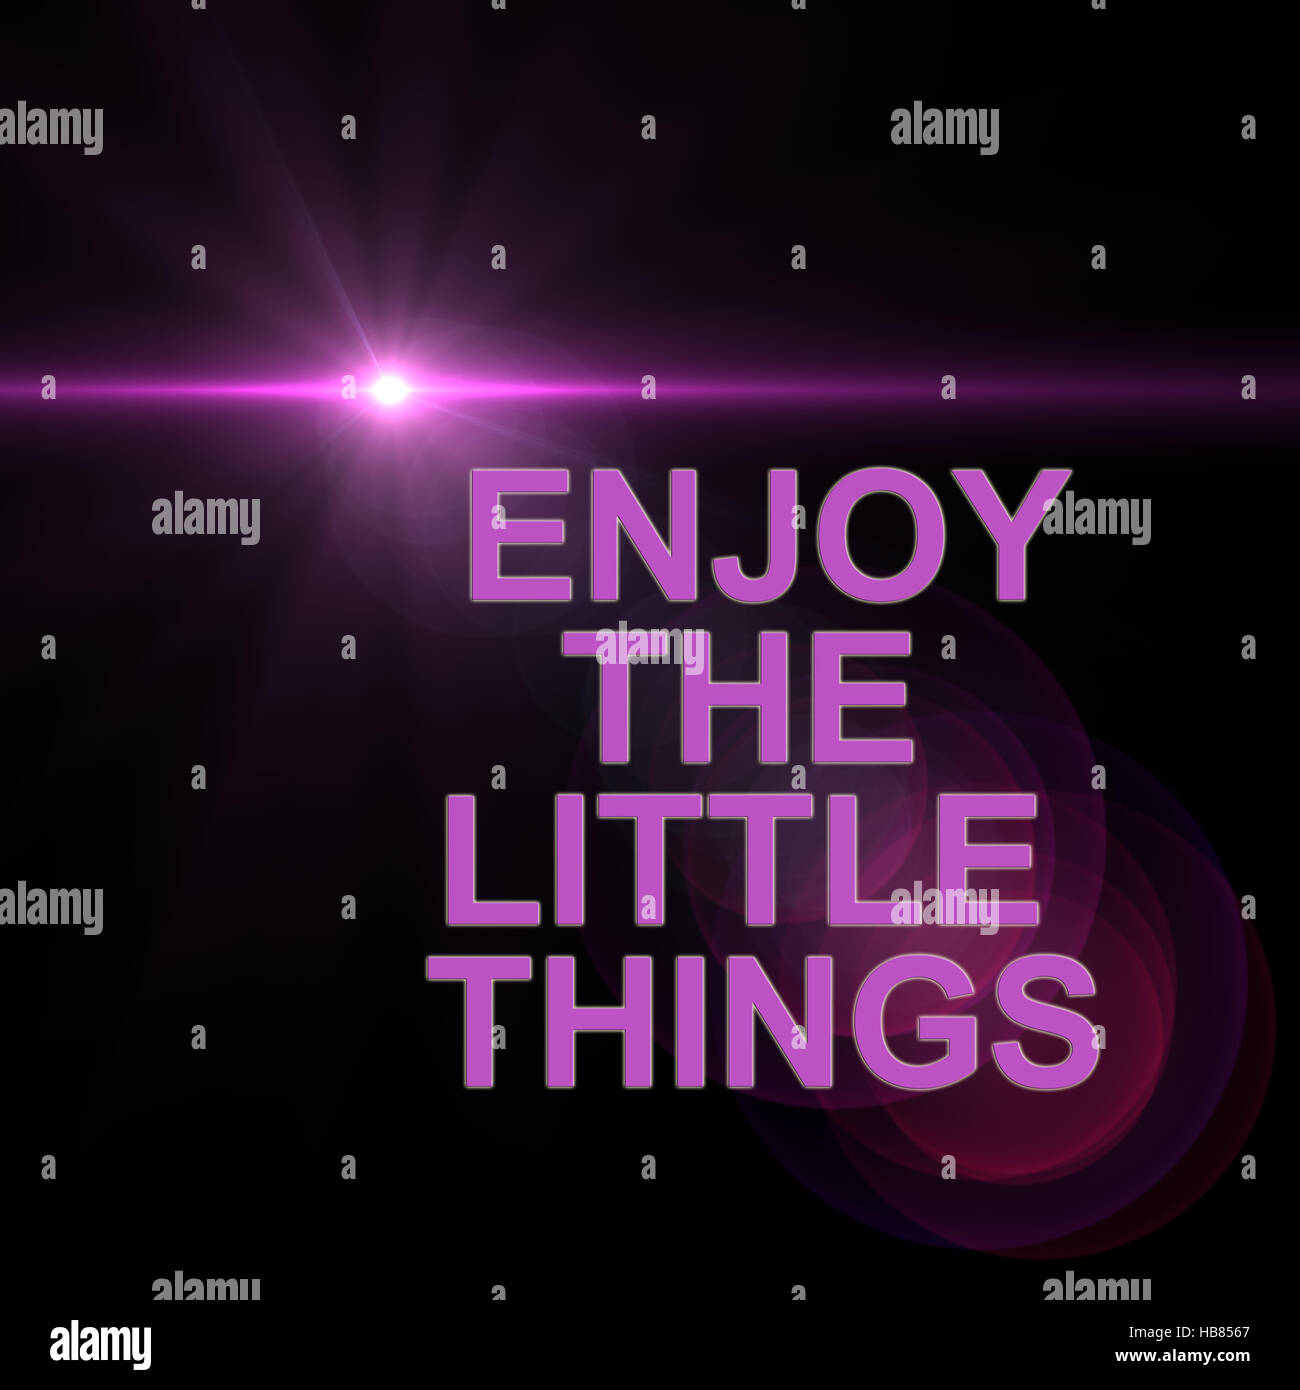 enjoy the little things - Stock Image